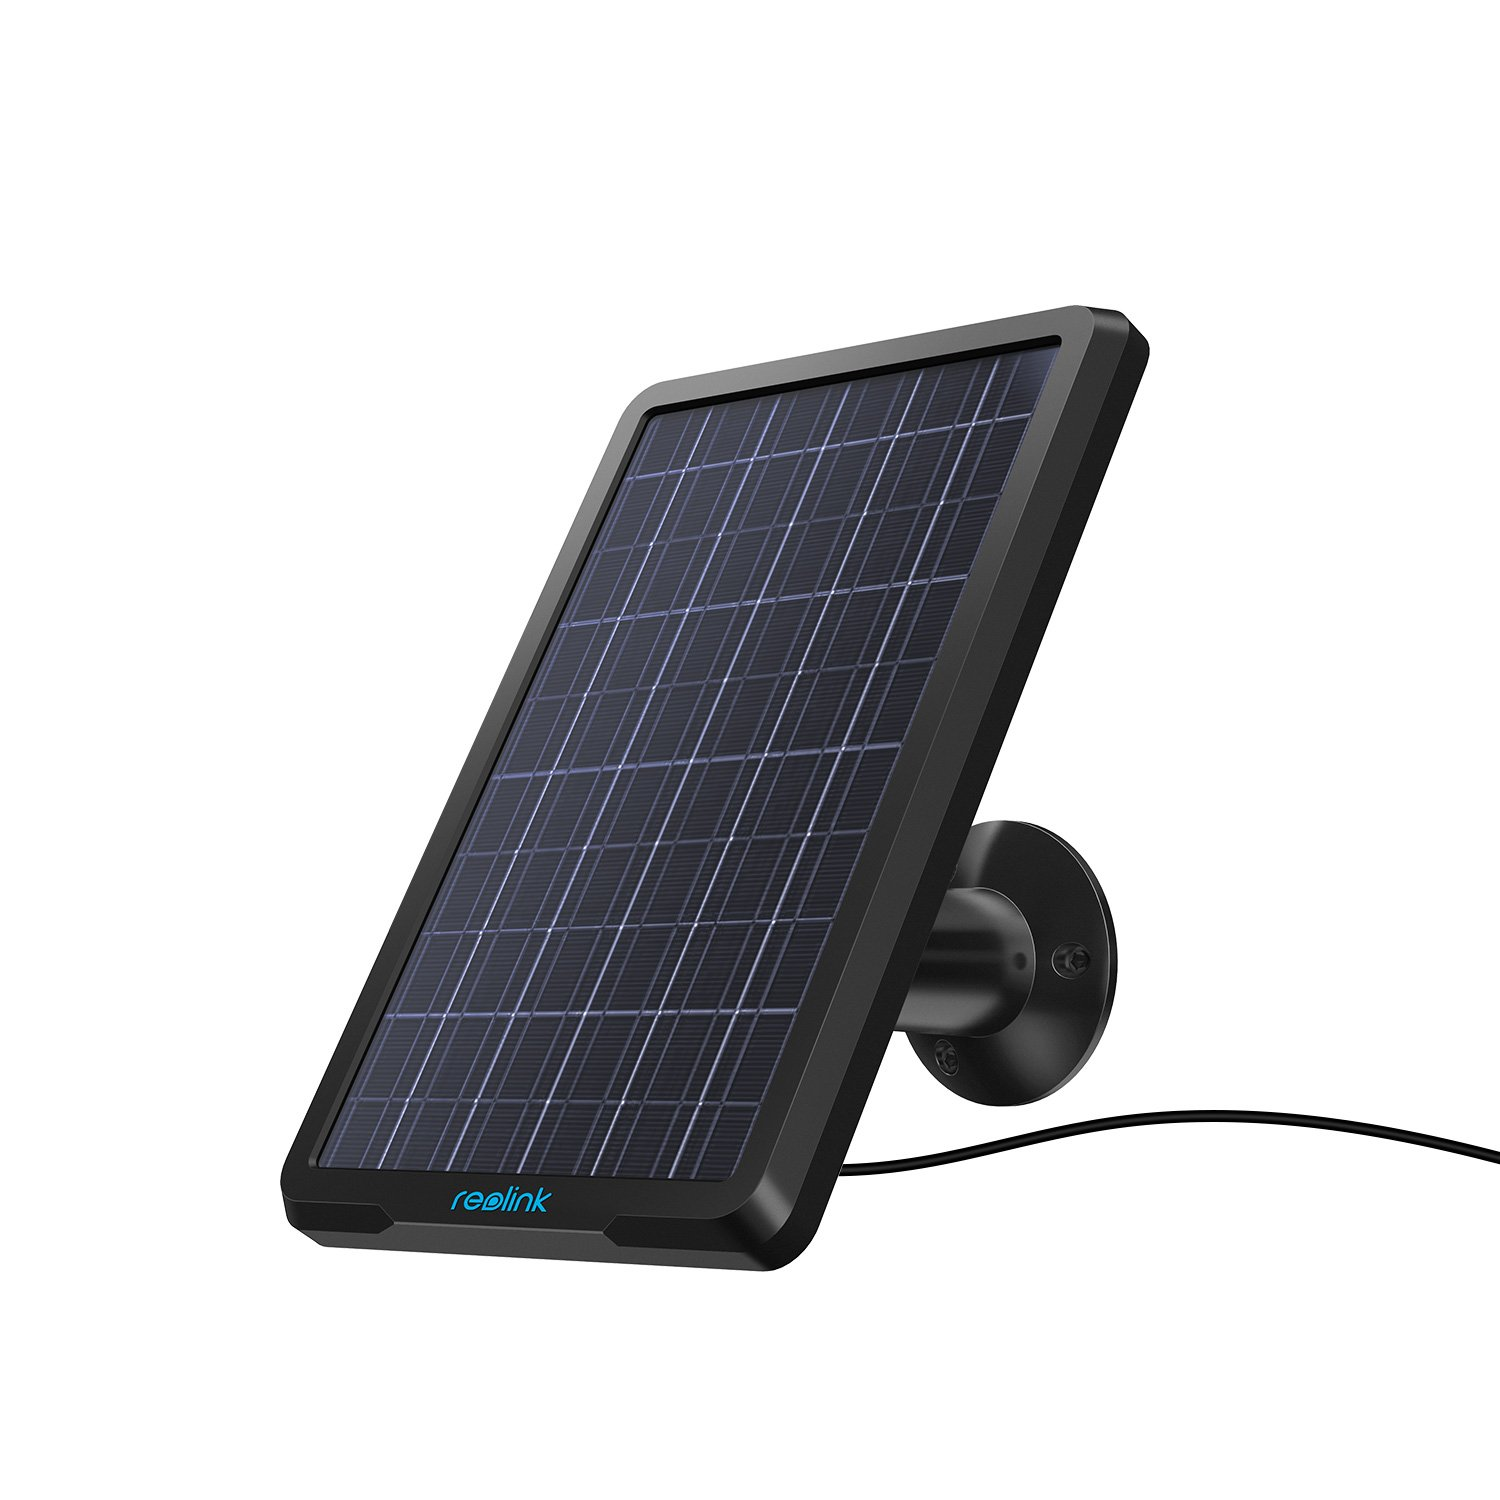 Reolink Solar Panel Power Supply for Wireless Outdoor IP Security Camera Argus 2, Argus Pro, Argus Eco, Argus PT, Go…